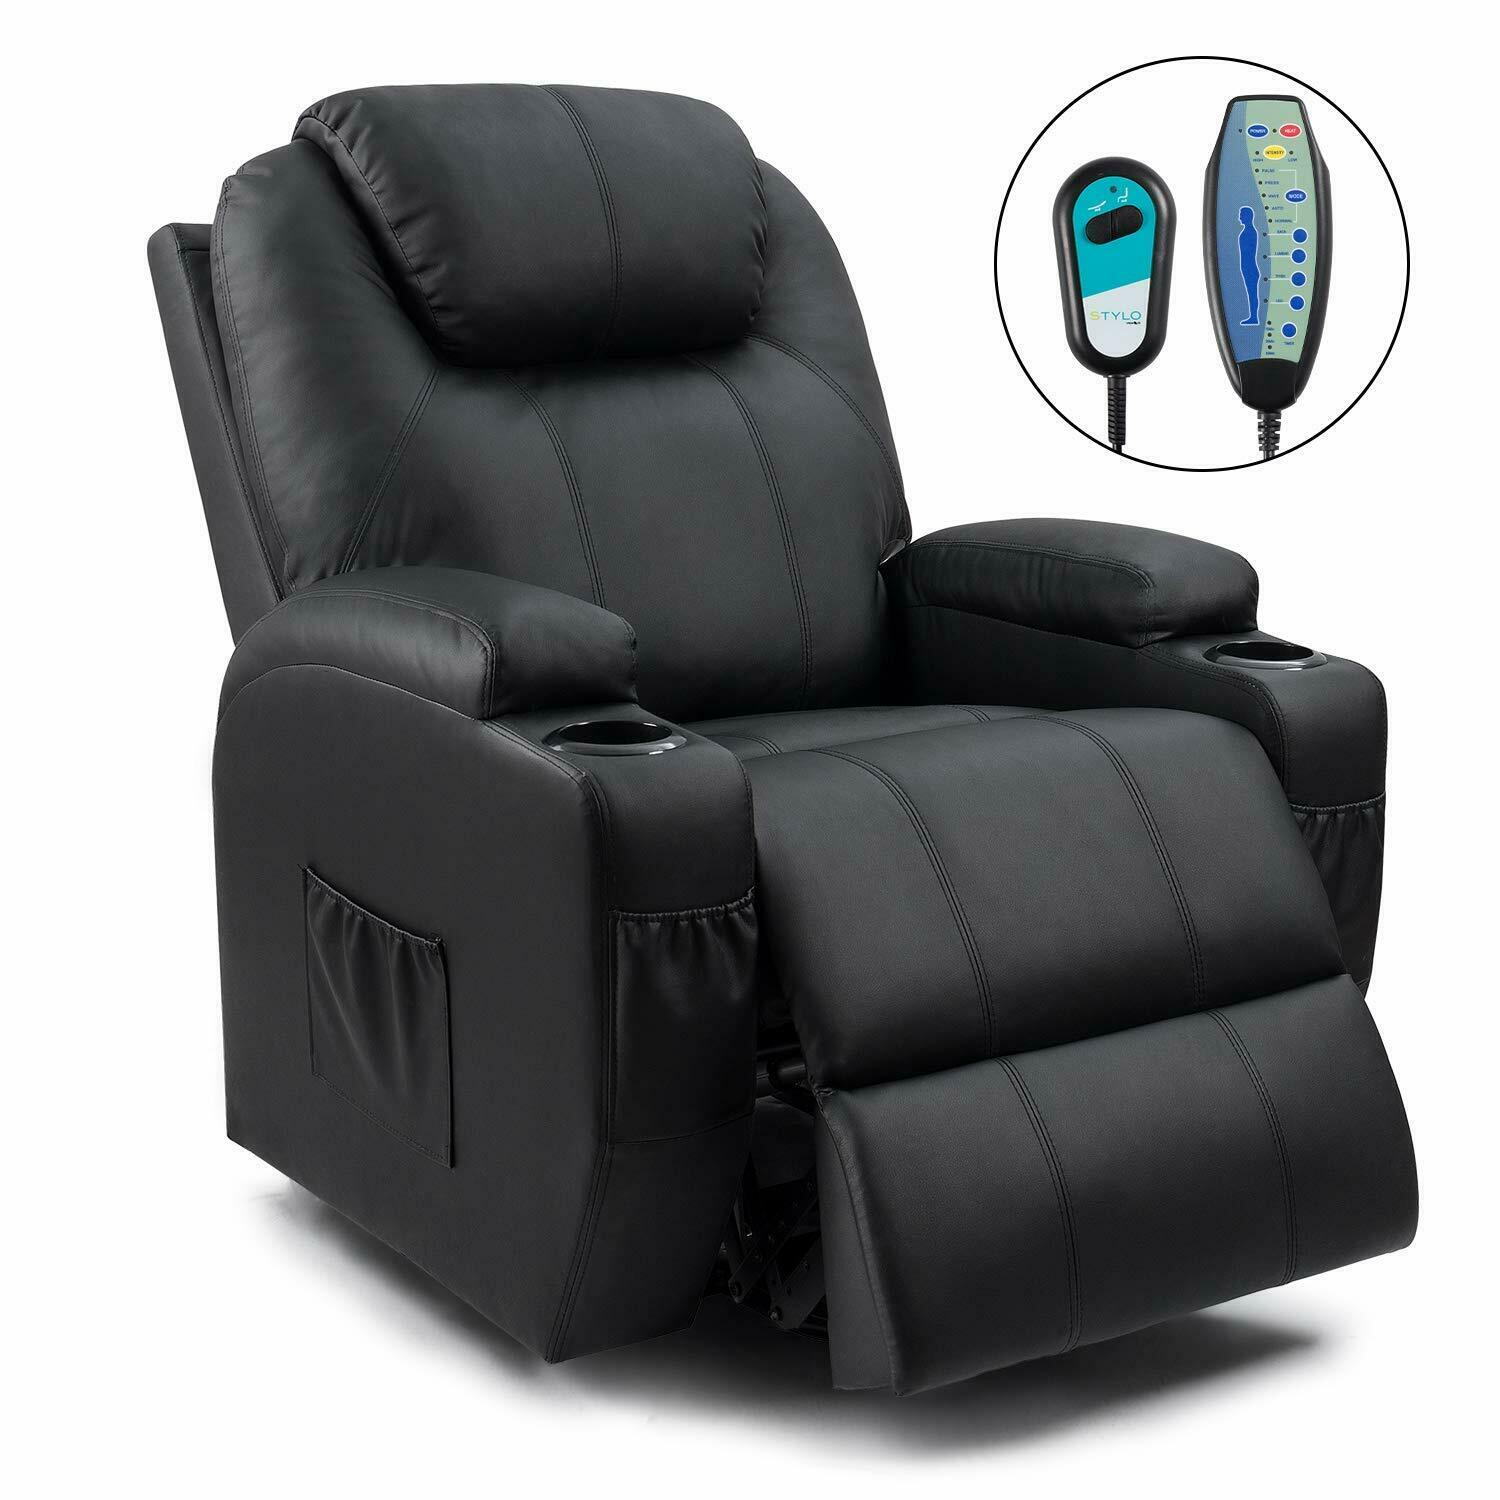 Recliner Chair Power Lift Massage Heating Living Room Sofa Black Faux Leather